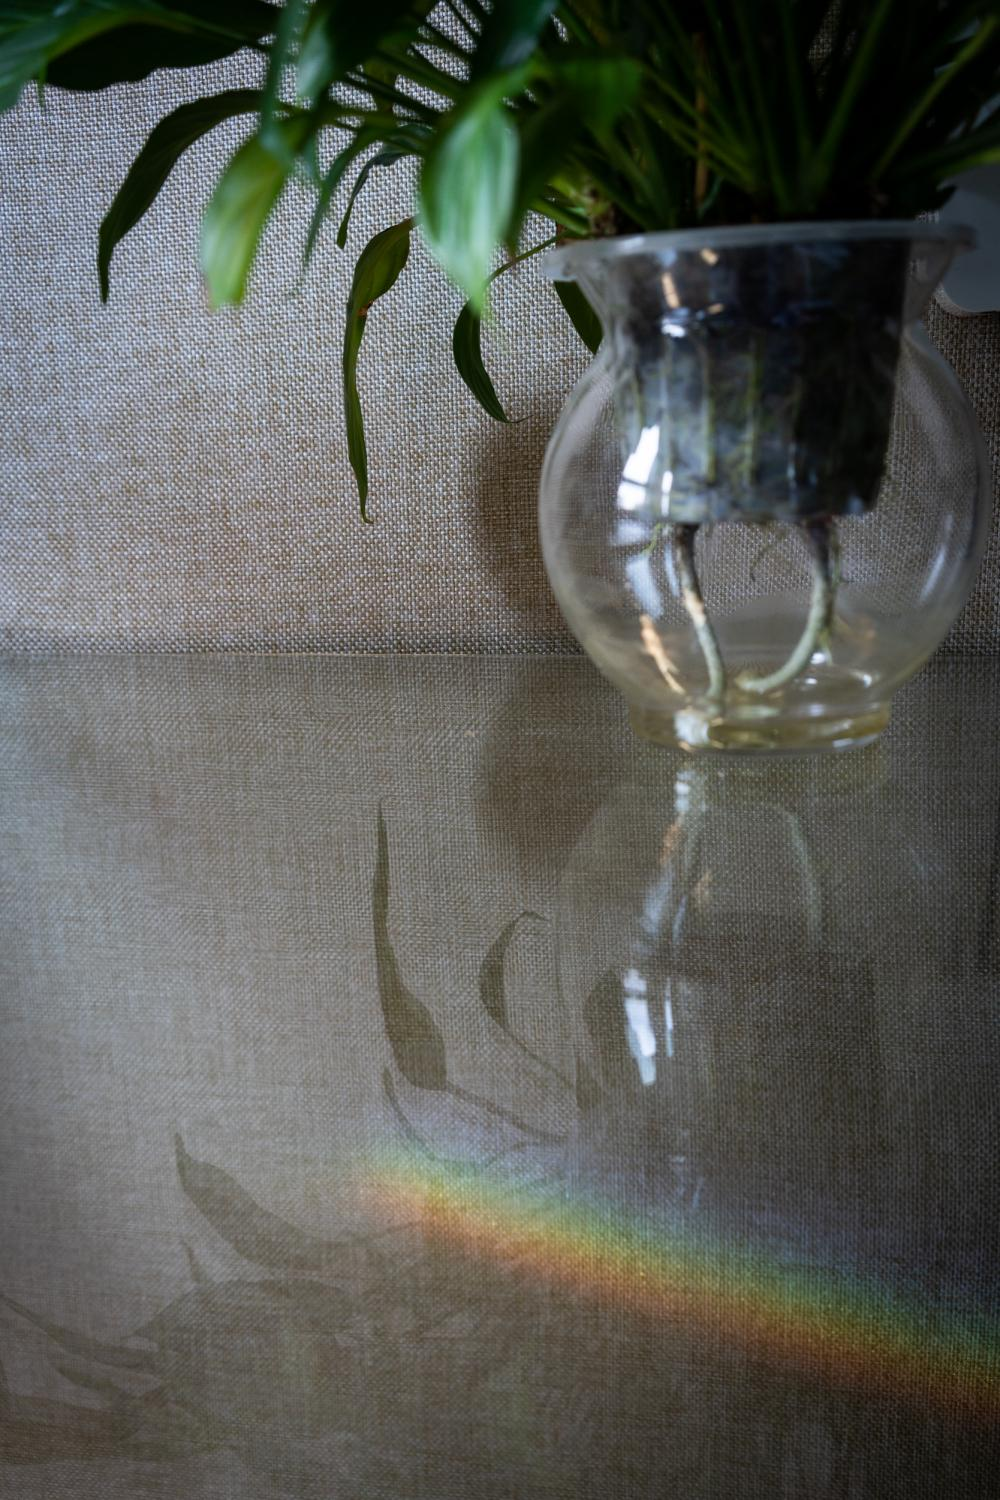 Staying in the same room and looking at the same things for 14 days make me excited at even the smallest novel details. On the tenth day of quarantine, I find a small rainbow on the wall near my desk.